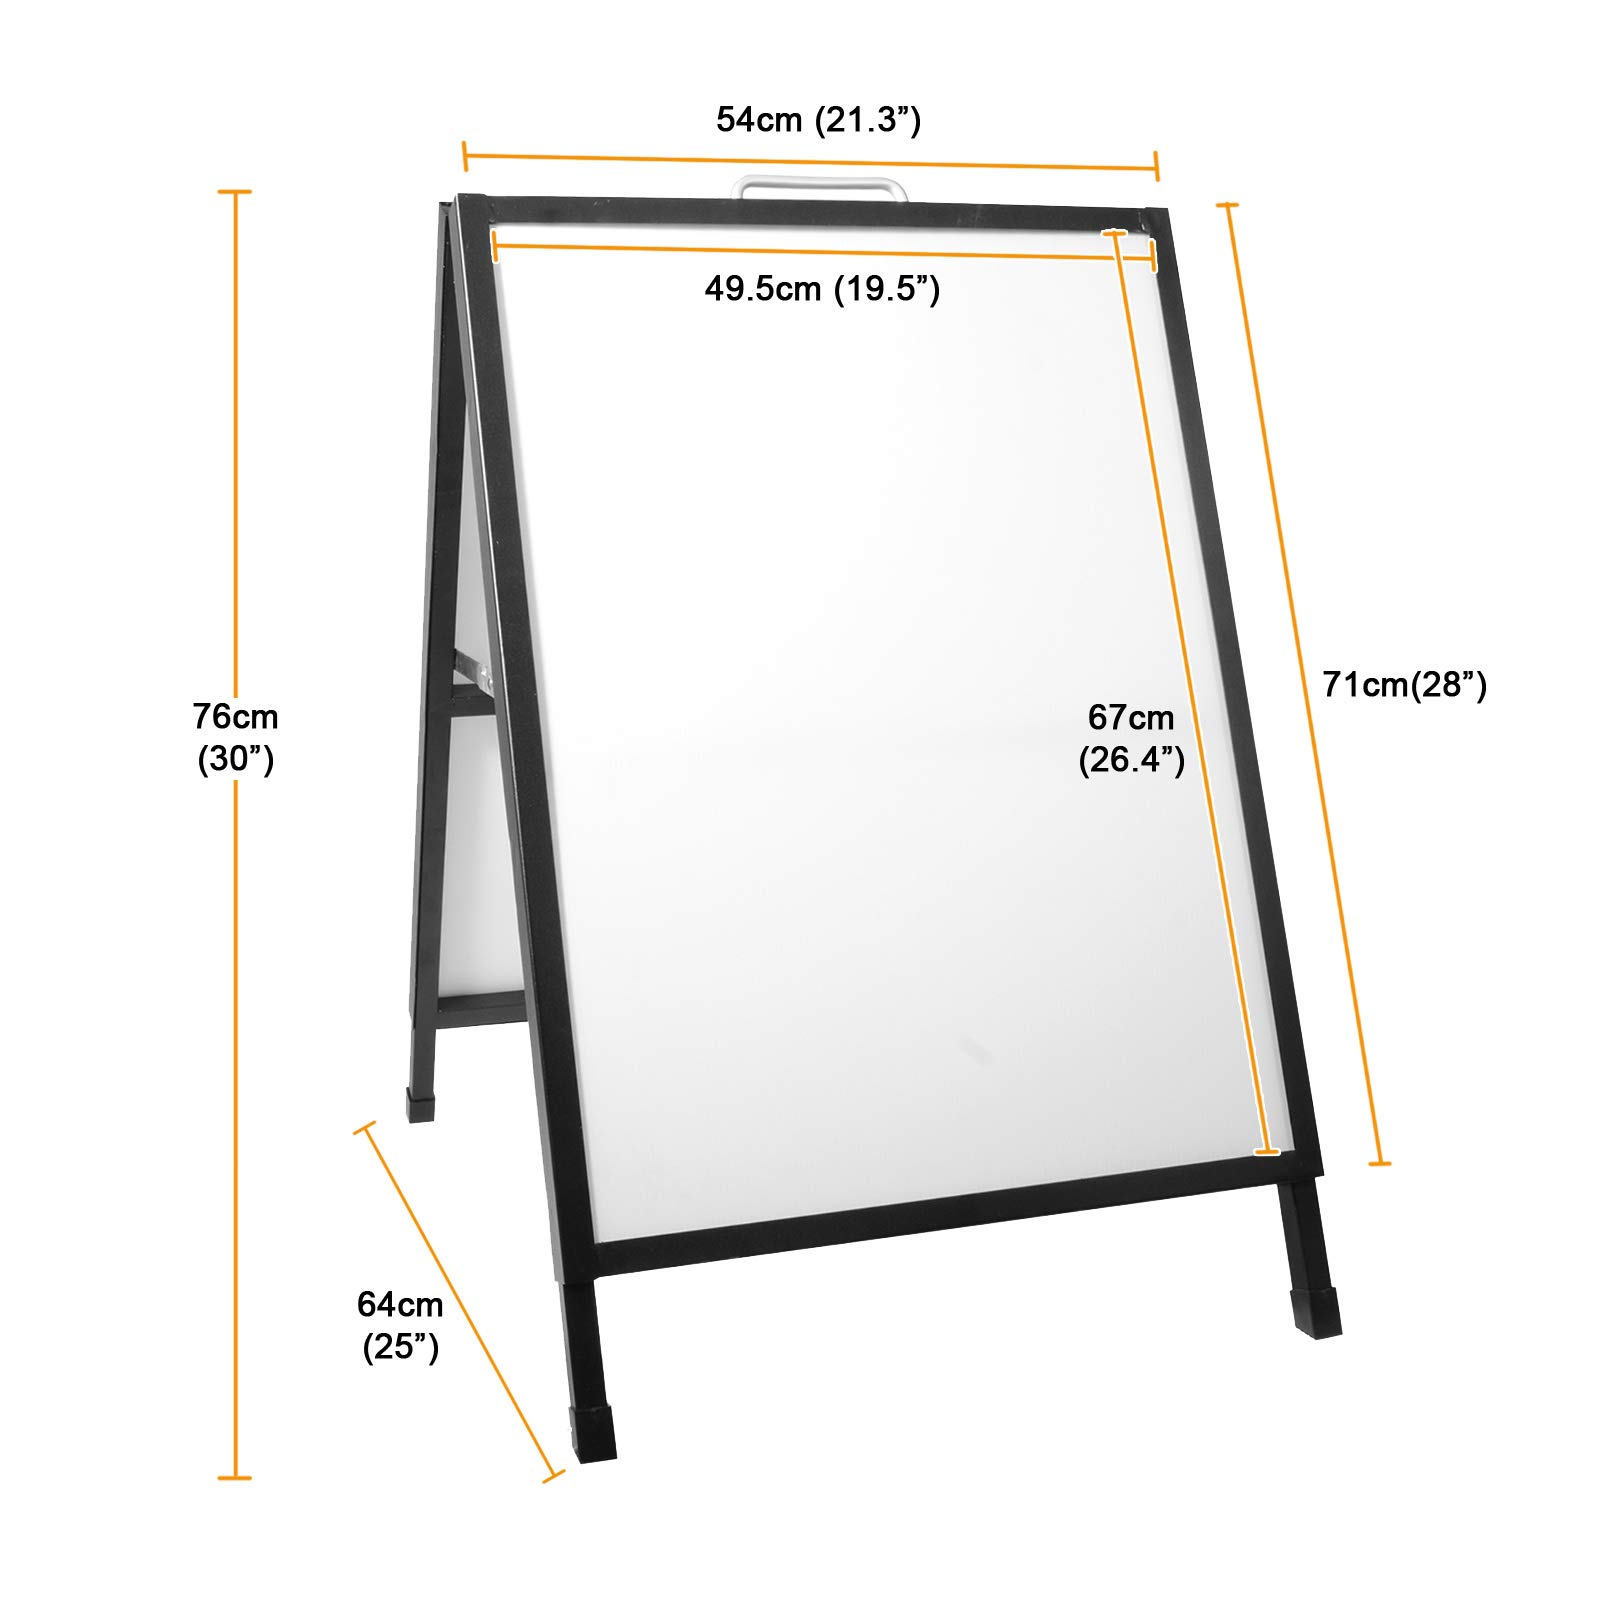 Voilamart Pavement Sign A-Board Sign Display Pavement Board Heavy Duty Steel A-Frame Double Sided Poster Stand Holder for Outdoor Advertising Shop with 2 PVC Panels